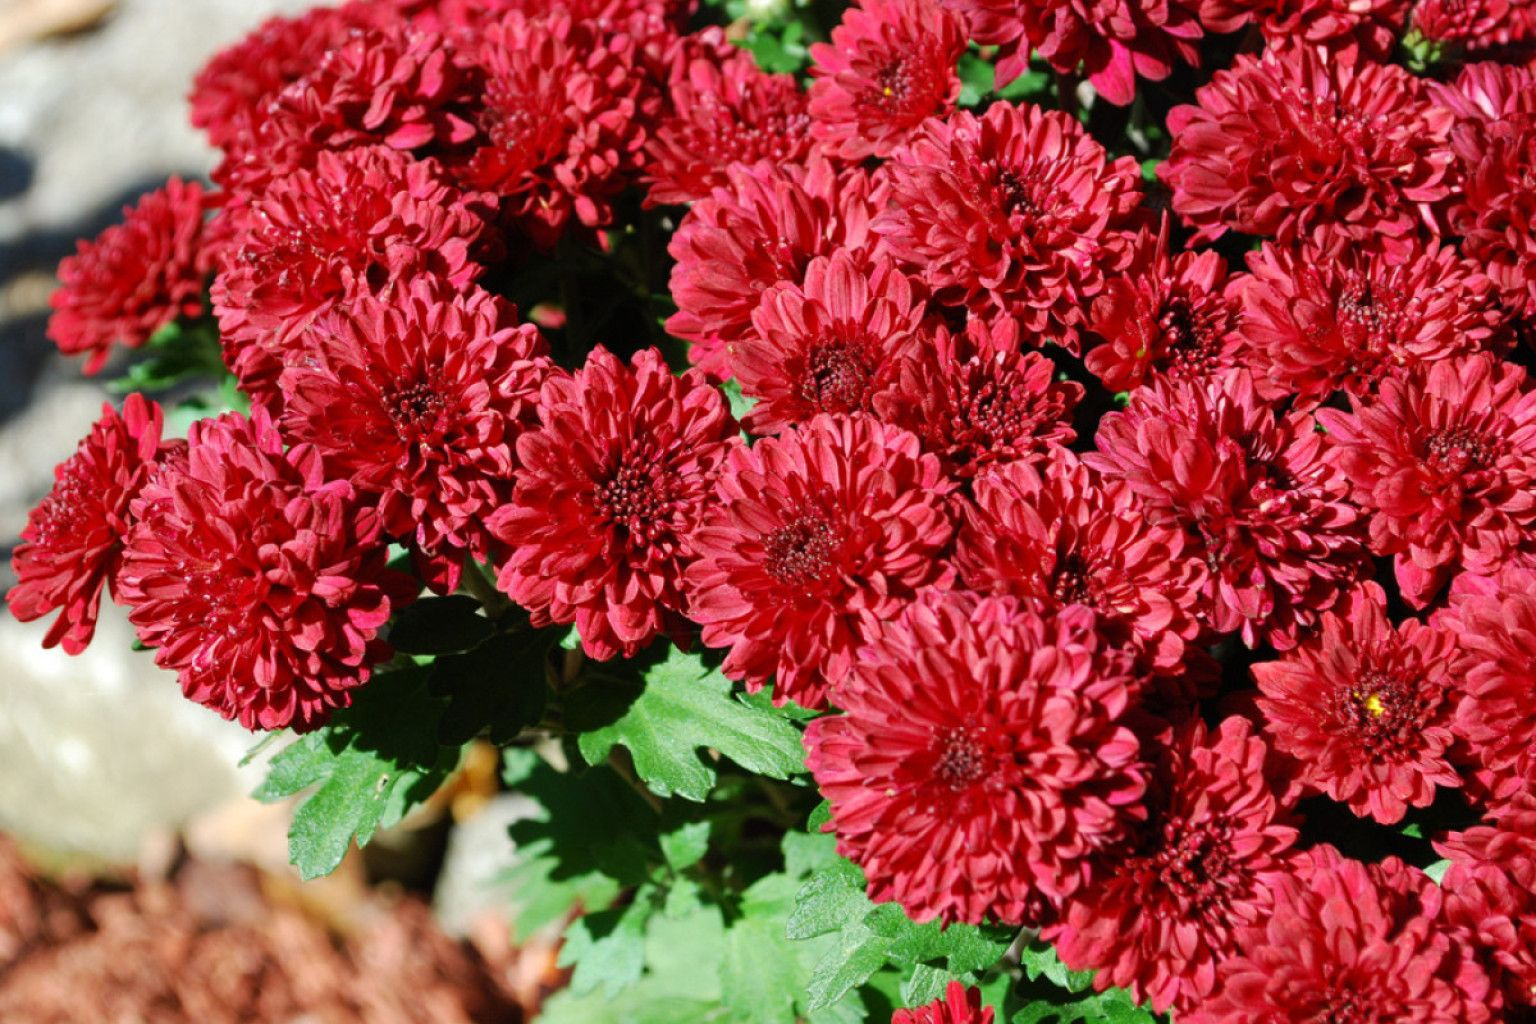 10 beautiful fall flowers to liven up your garden garden ideas 10 beautiful fall flowers to liven up your garden dhlflorist Images